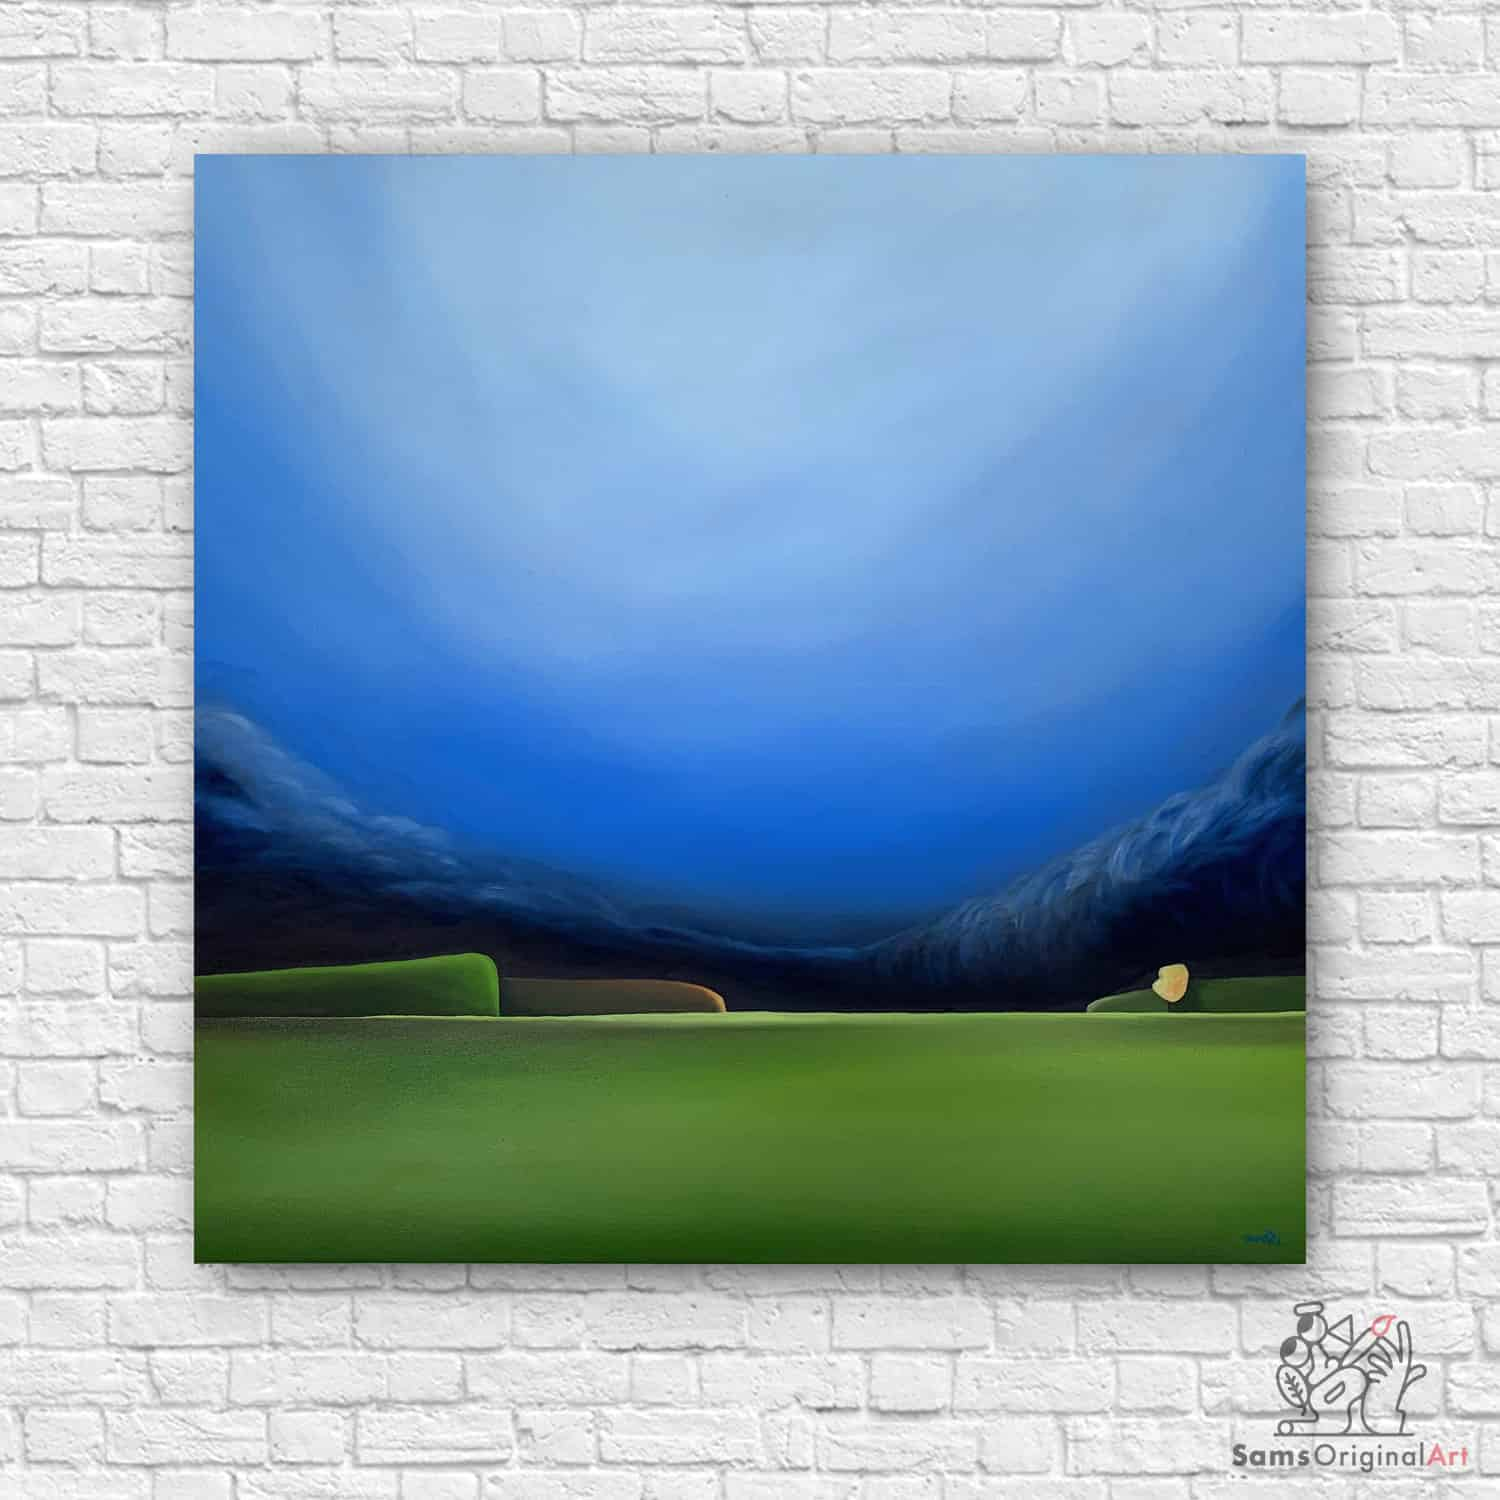 UBC Golf Course Paintings